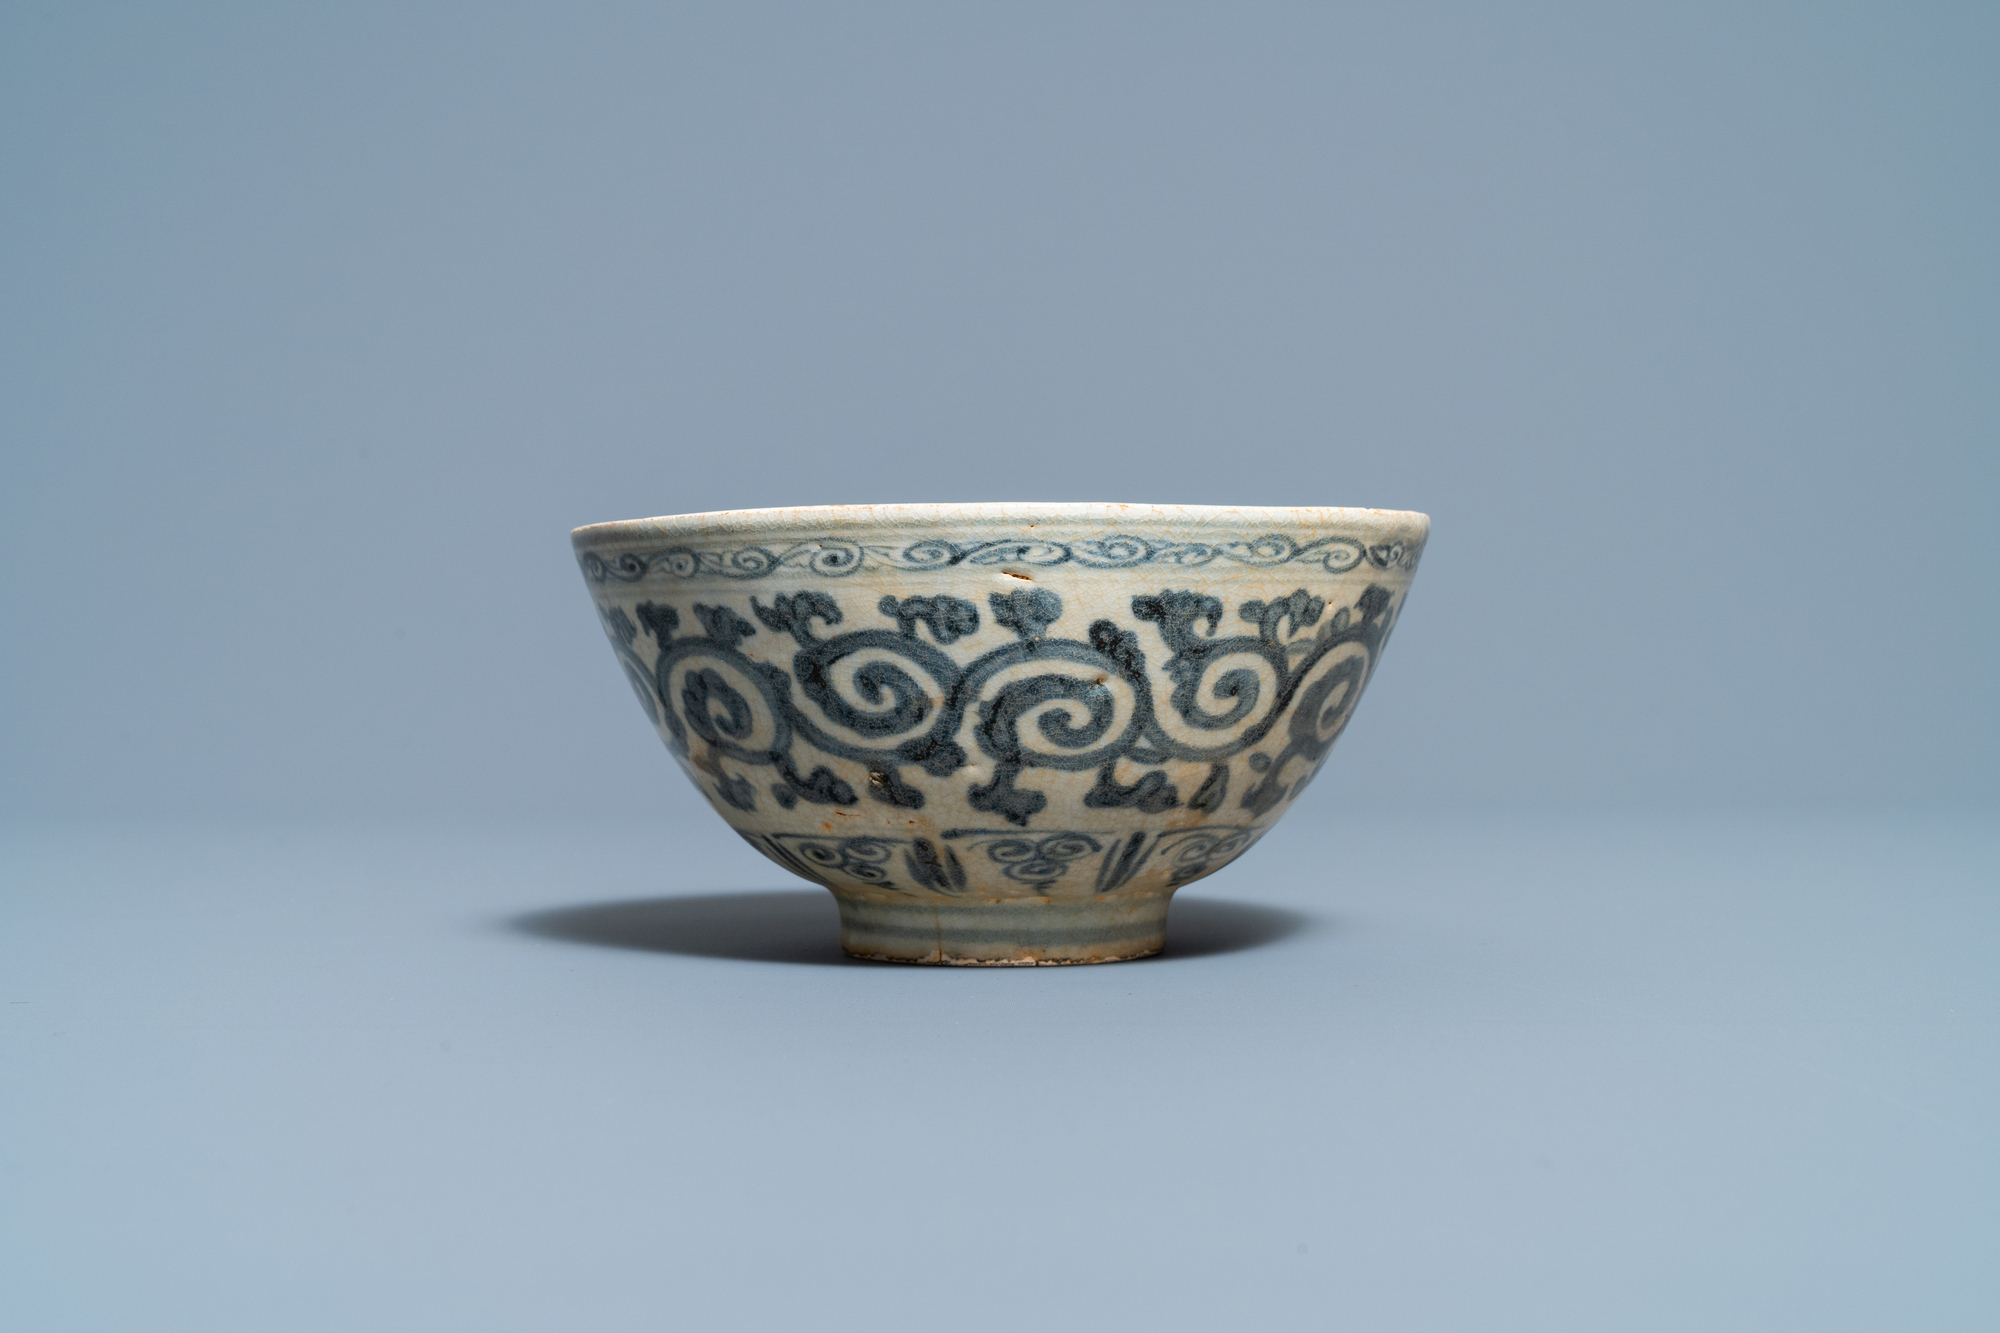 Four blue and white Vietnamese or Annamese ceramics and a Chinese jarlet, 15/16th C. - Image 3 of 12